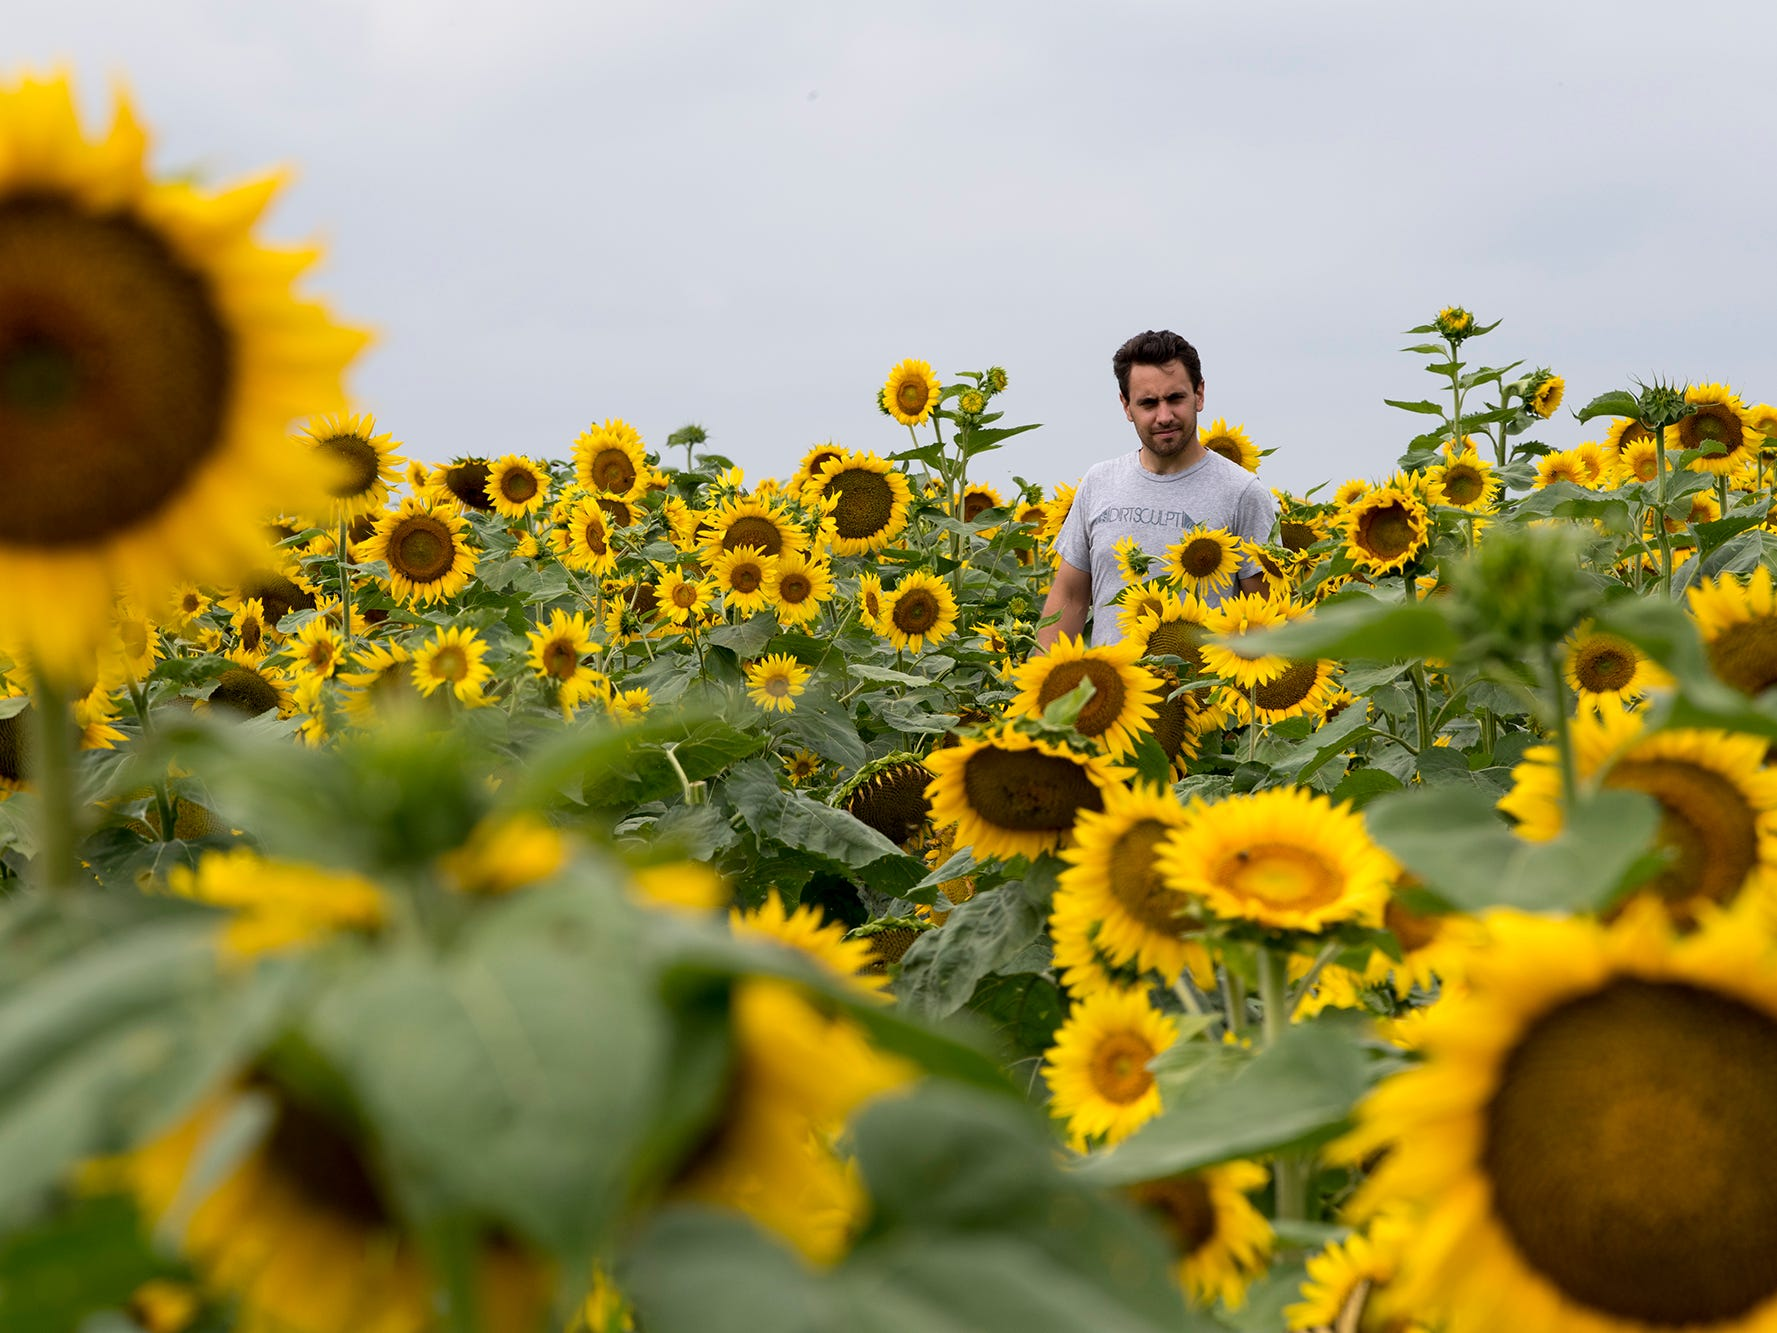 A person among the sunflowers during the 2nd Annual Sunflower Festival at Maple Lawn Farms near New Park.